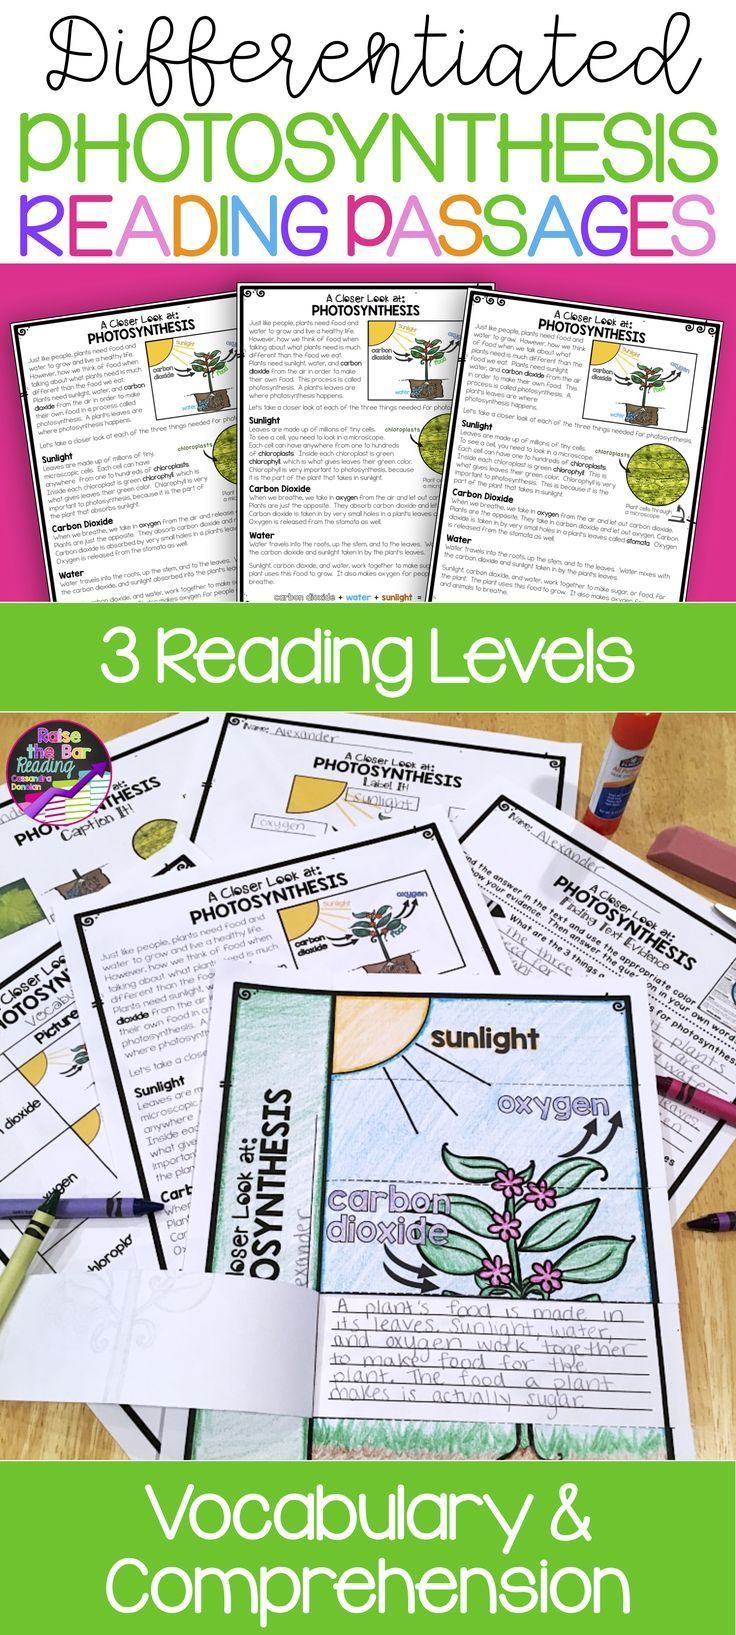 Photosynthesis Differentiated Reading Passages Comes With Tons Of Vocabulary Comprehension Reading Passages Photosynthesis Differentiated Reading Passages [ 1635 x 736 Pixel ]